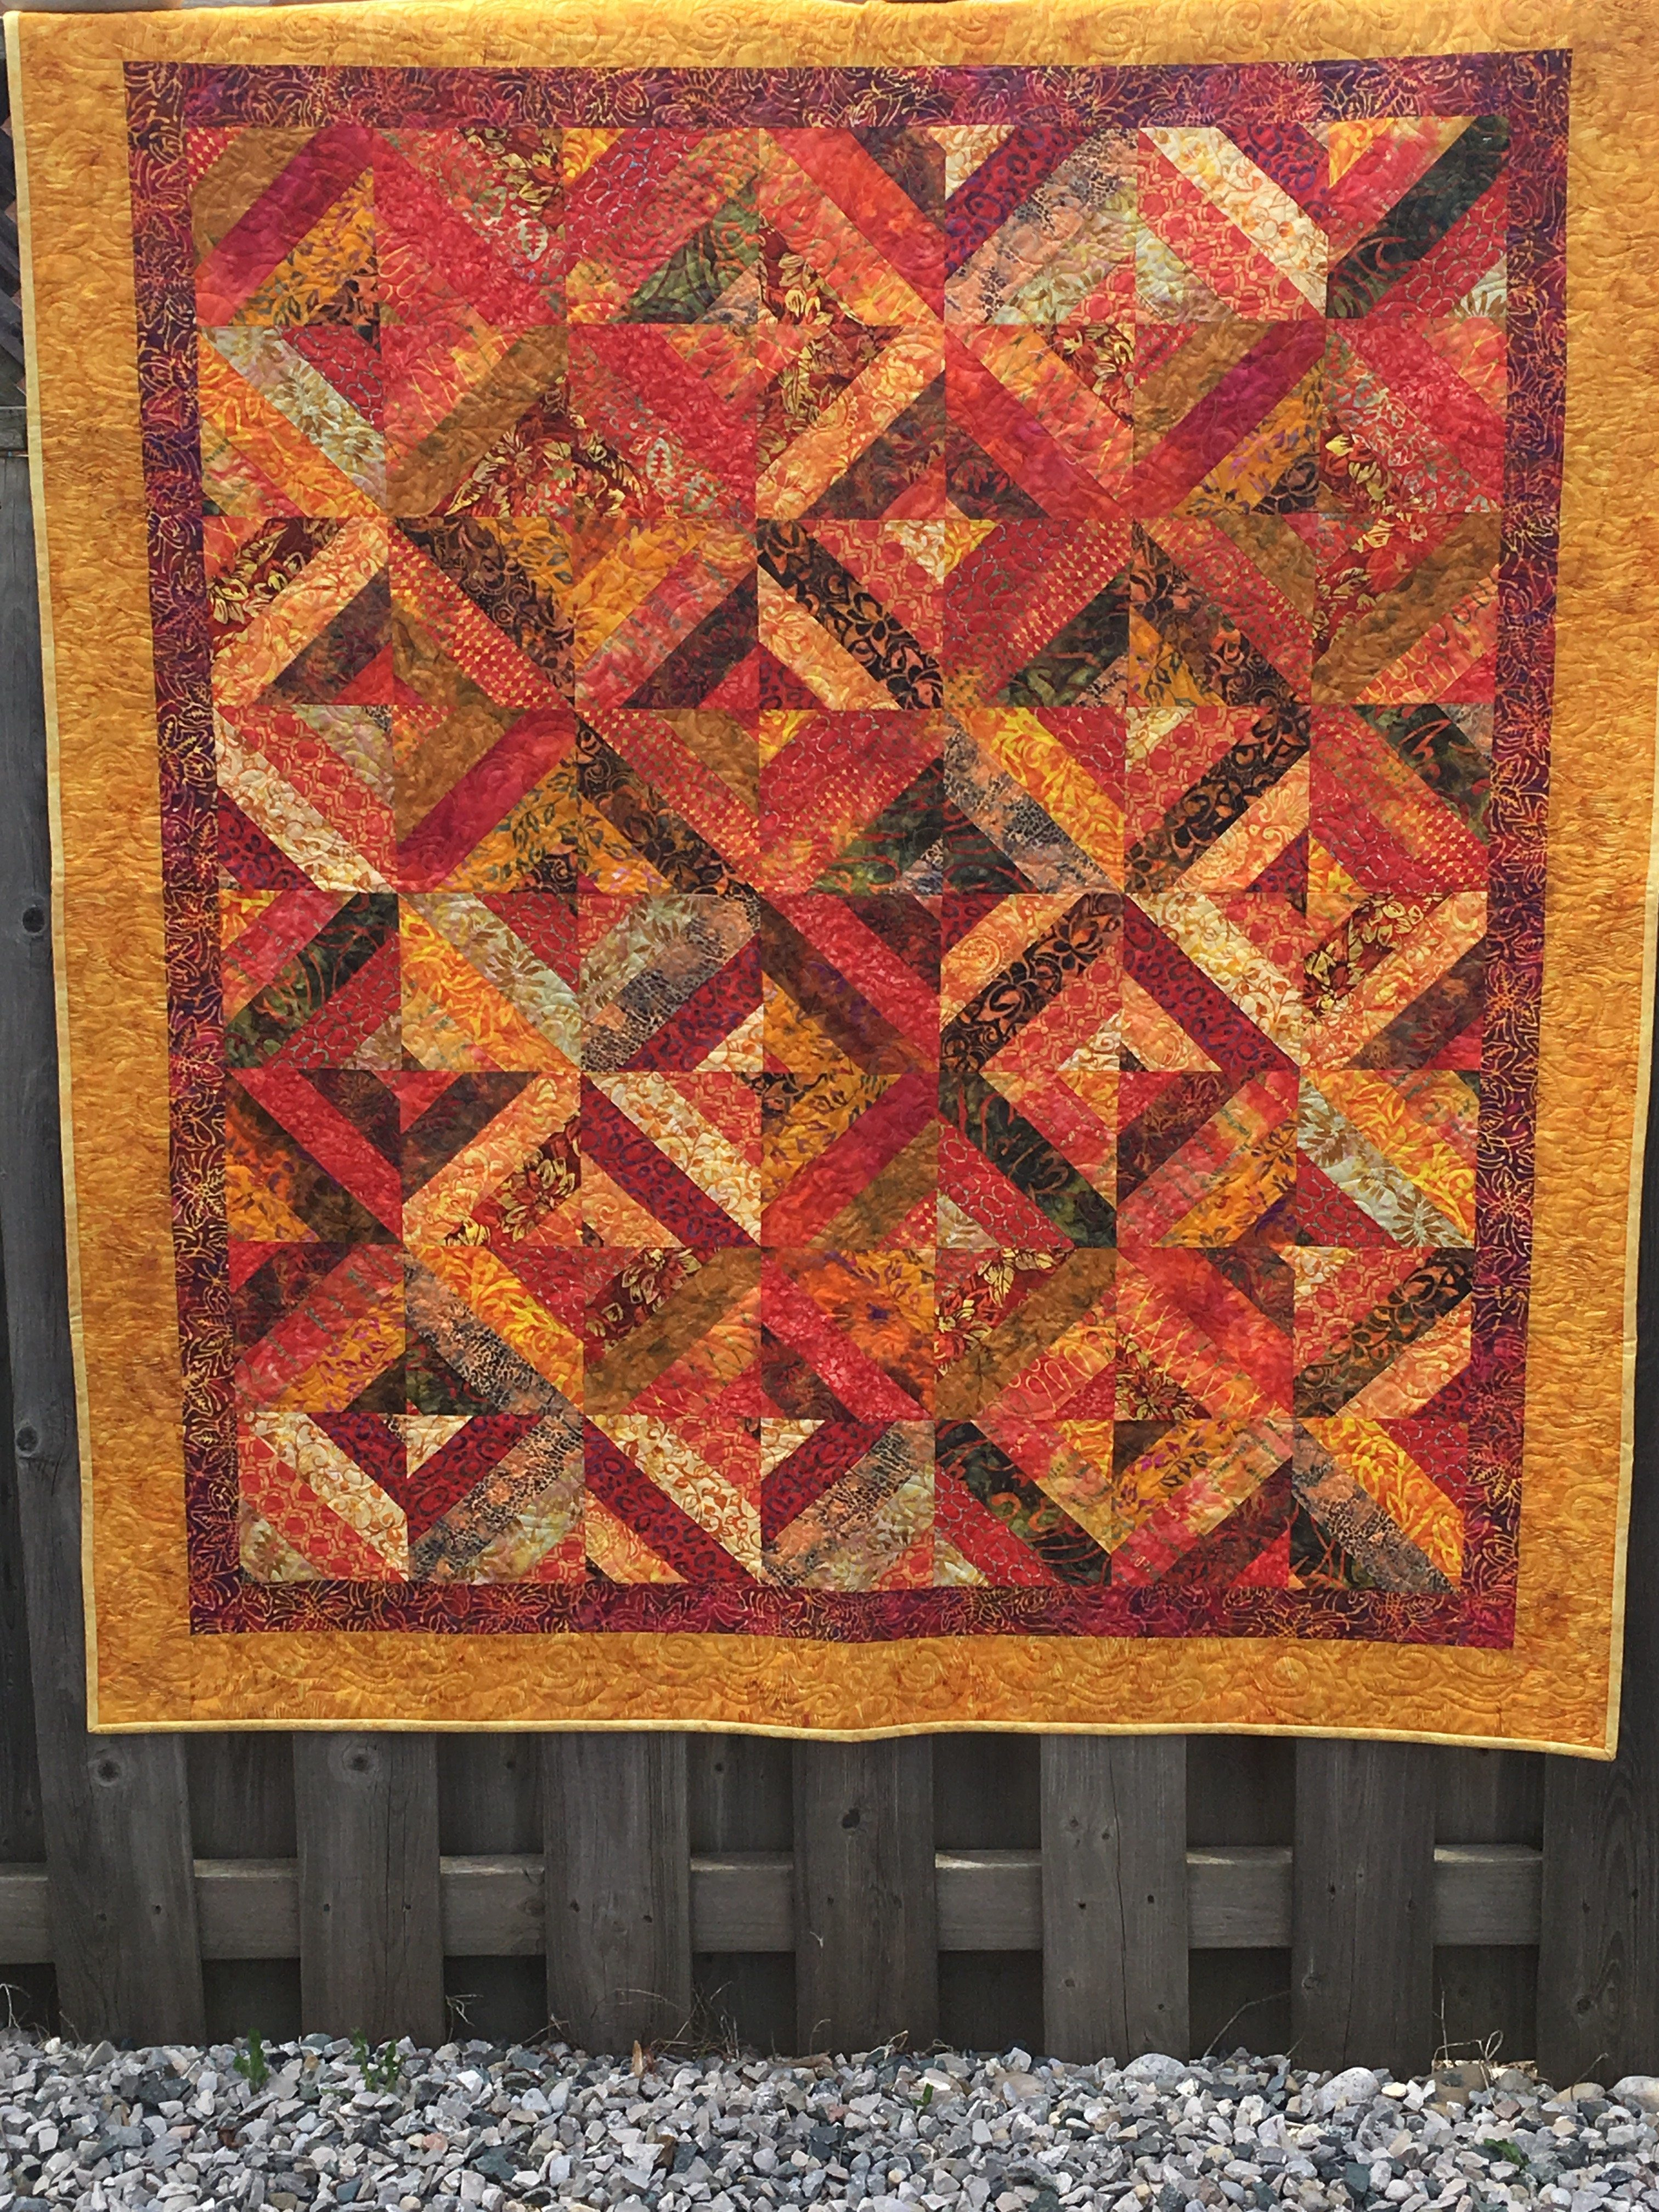 Fire Dragon Quilt